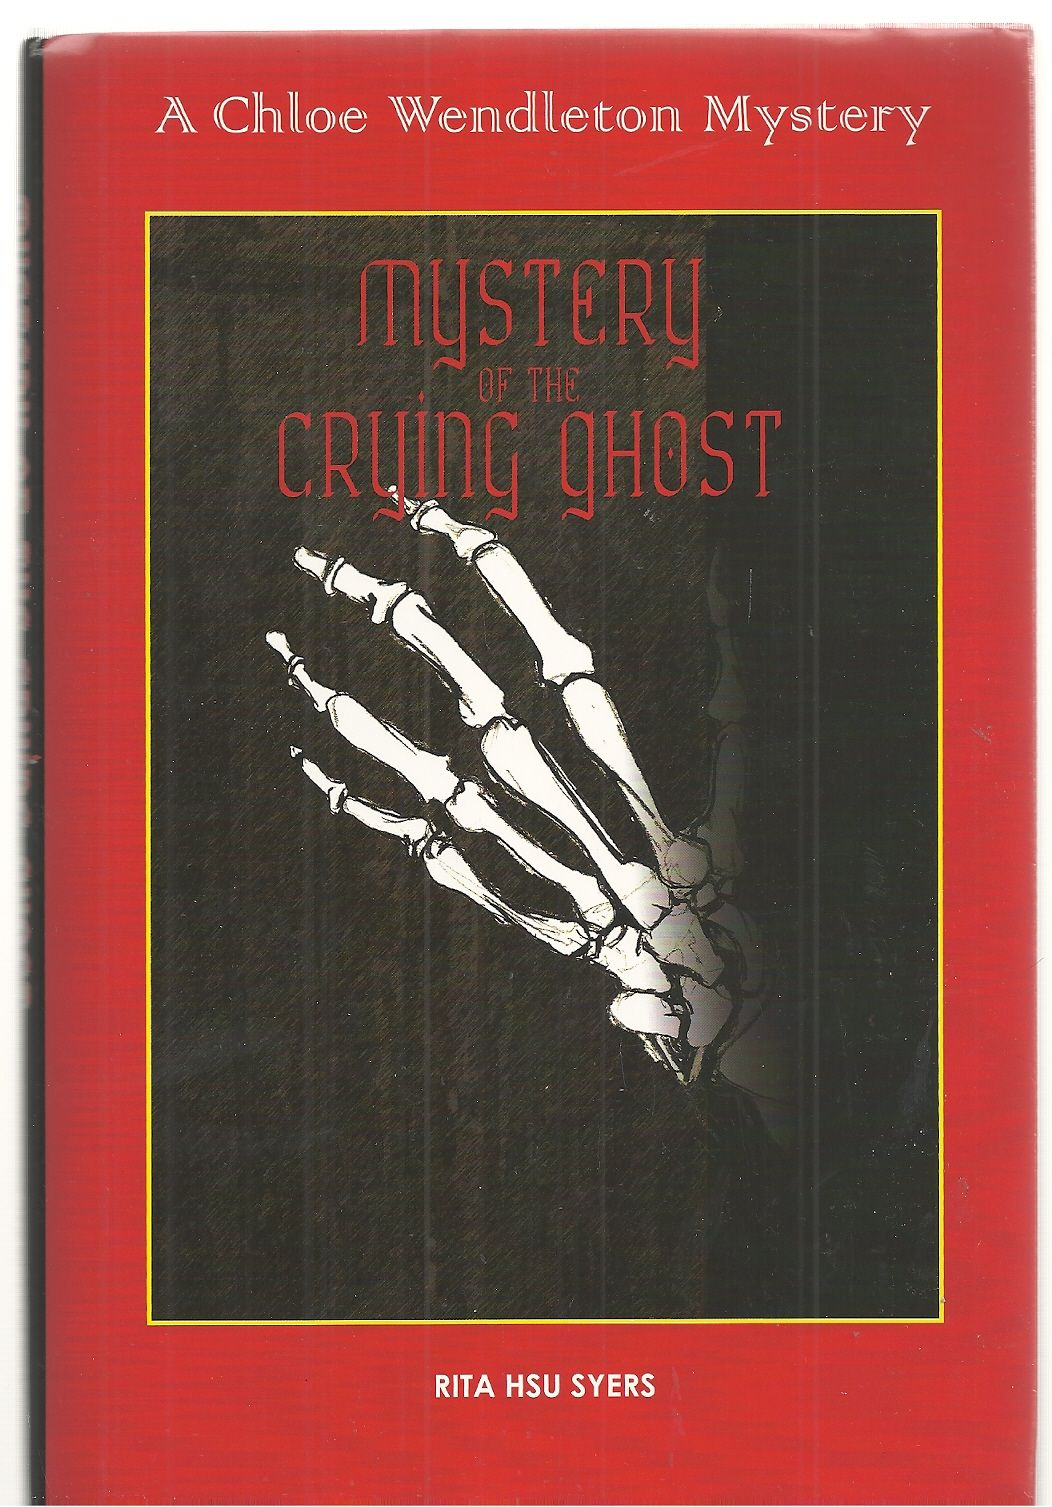 Mystery of the Crying Ghost, Rita Hsu Syers